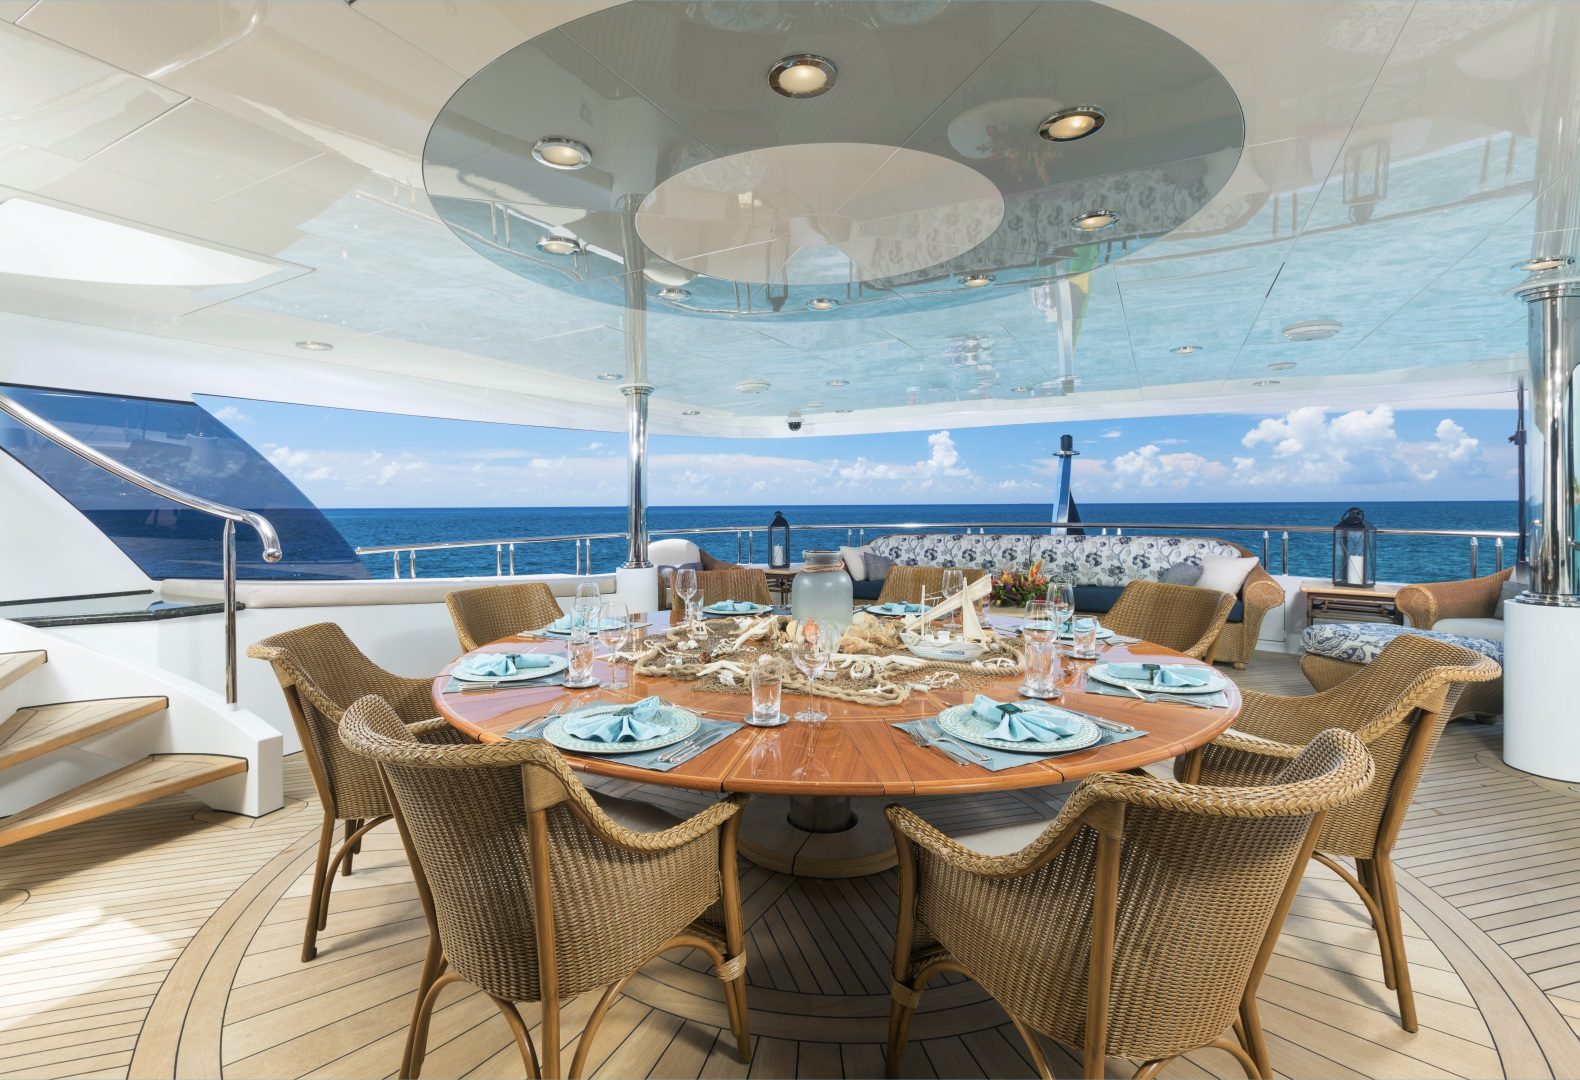 Trinity Yachts-164 Tri-deck Motor Yacht 2008-Amarula Sun Fort Lauderdale-Florida-United States-Alfresco Dining On Upper Deck-1513899 | Thumbnail